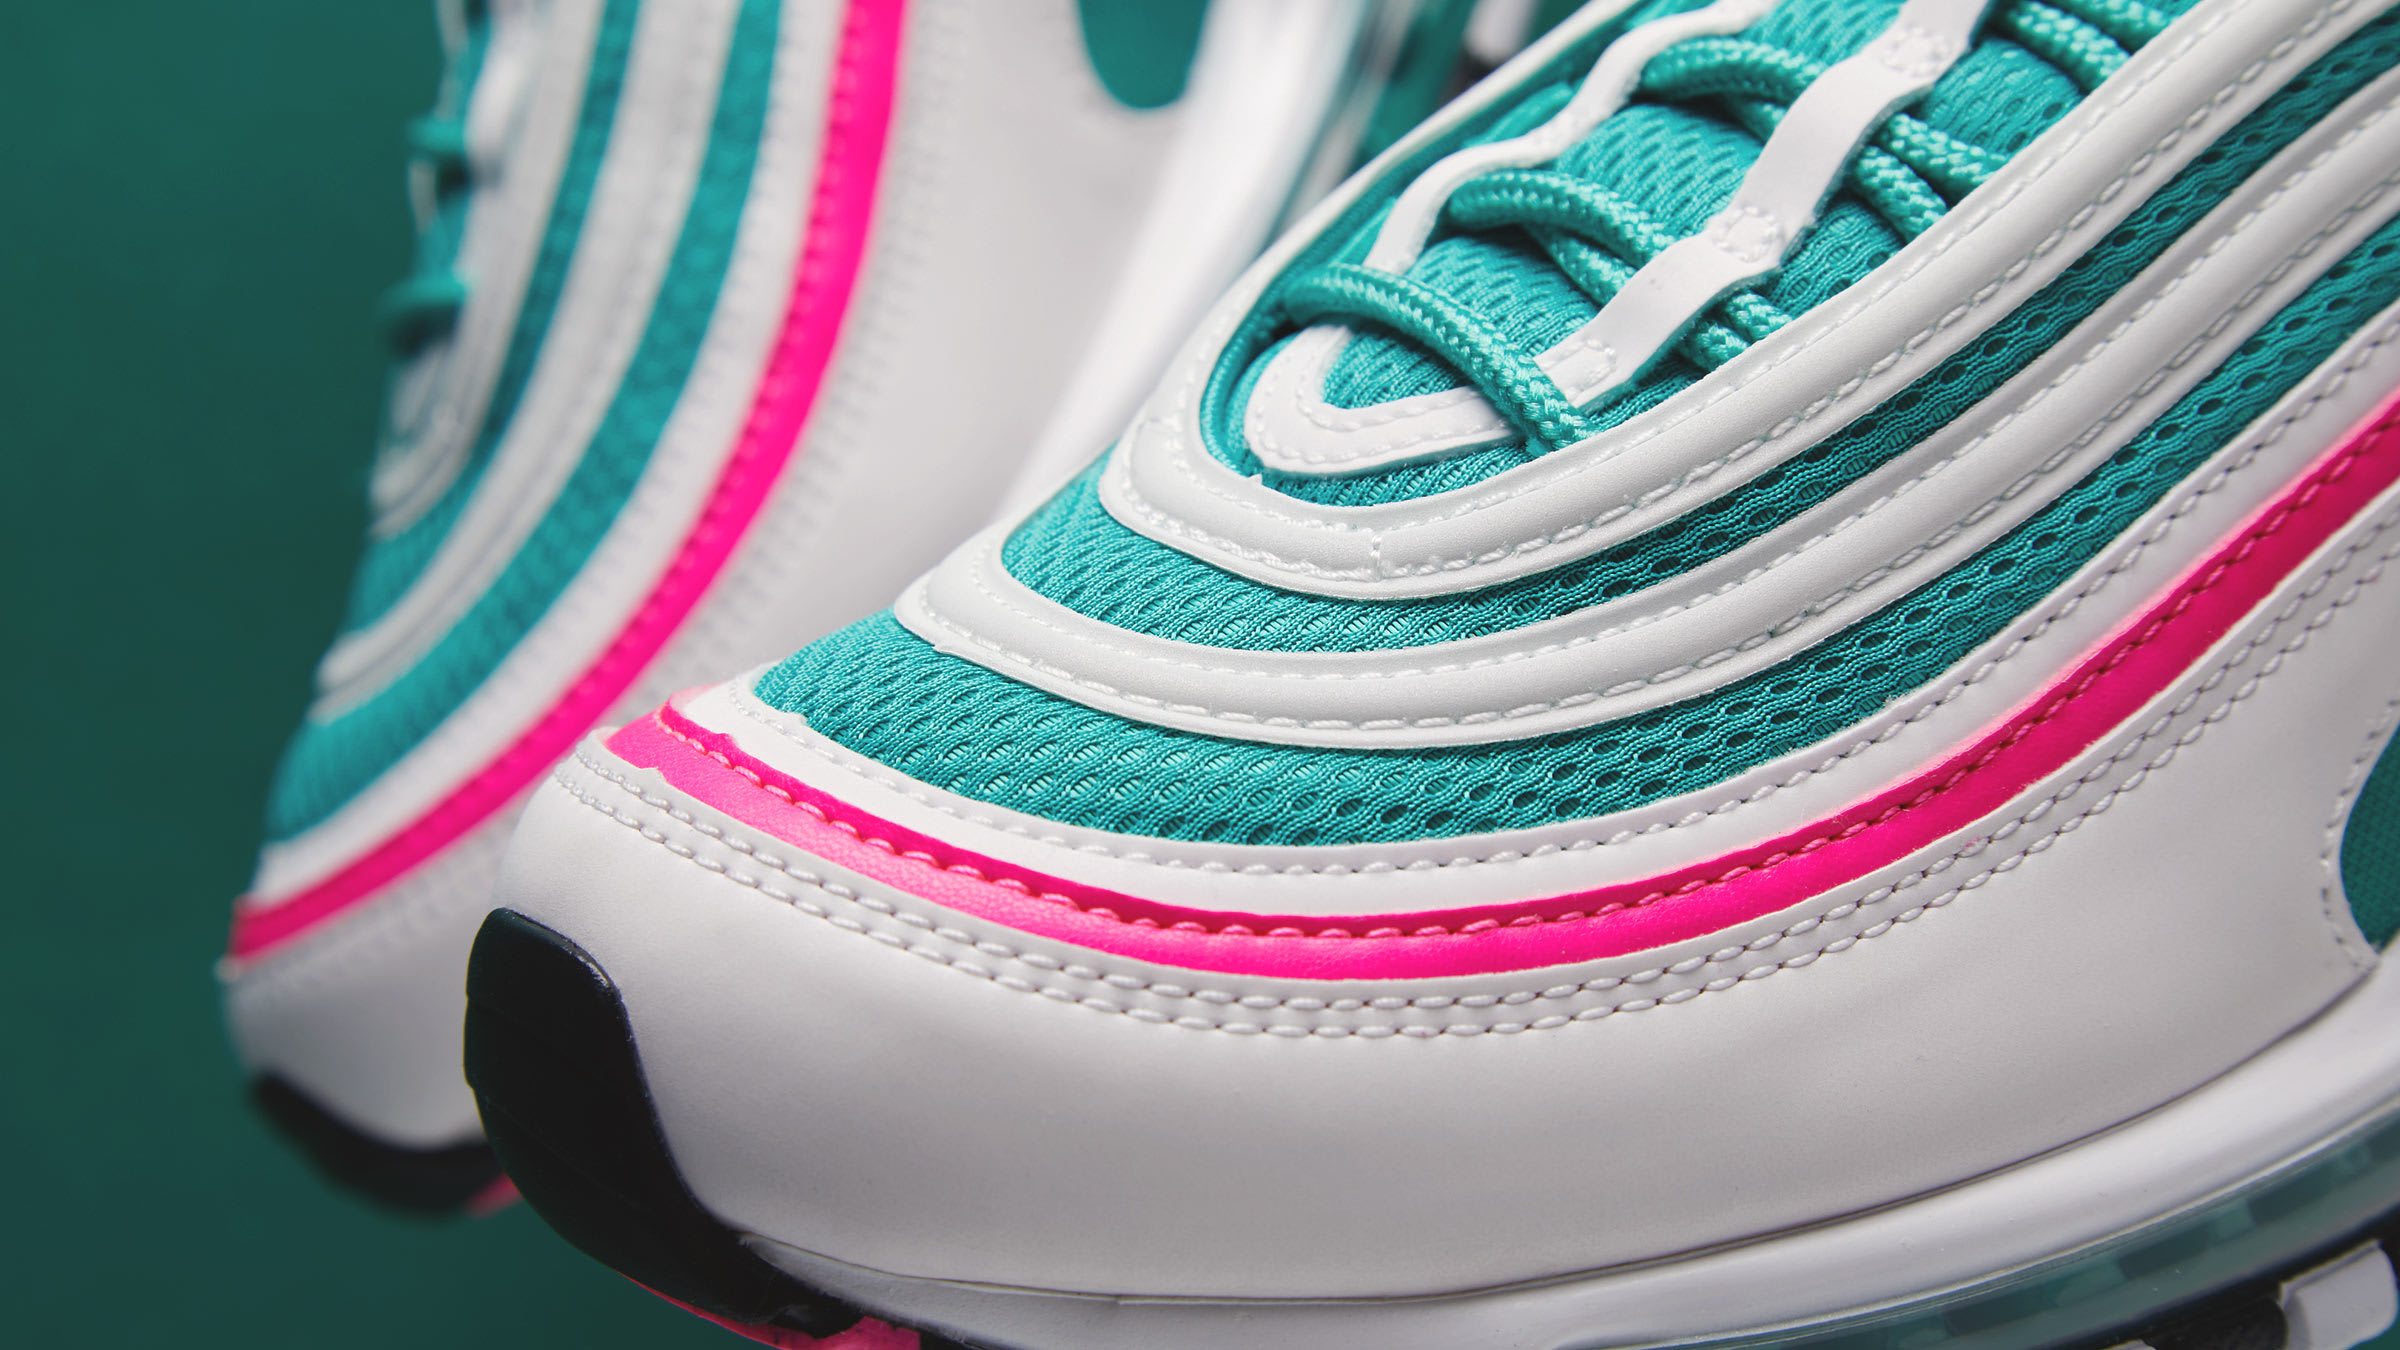 END. Features | Nike Air Max 'Miami Vice' Pack Register